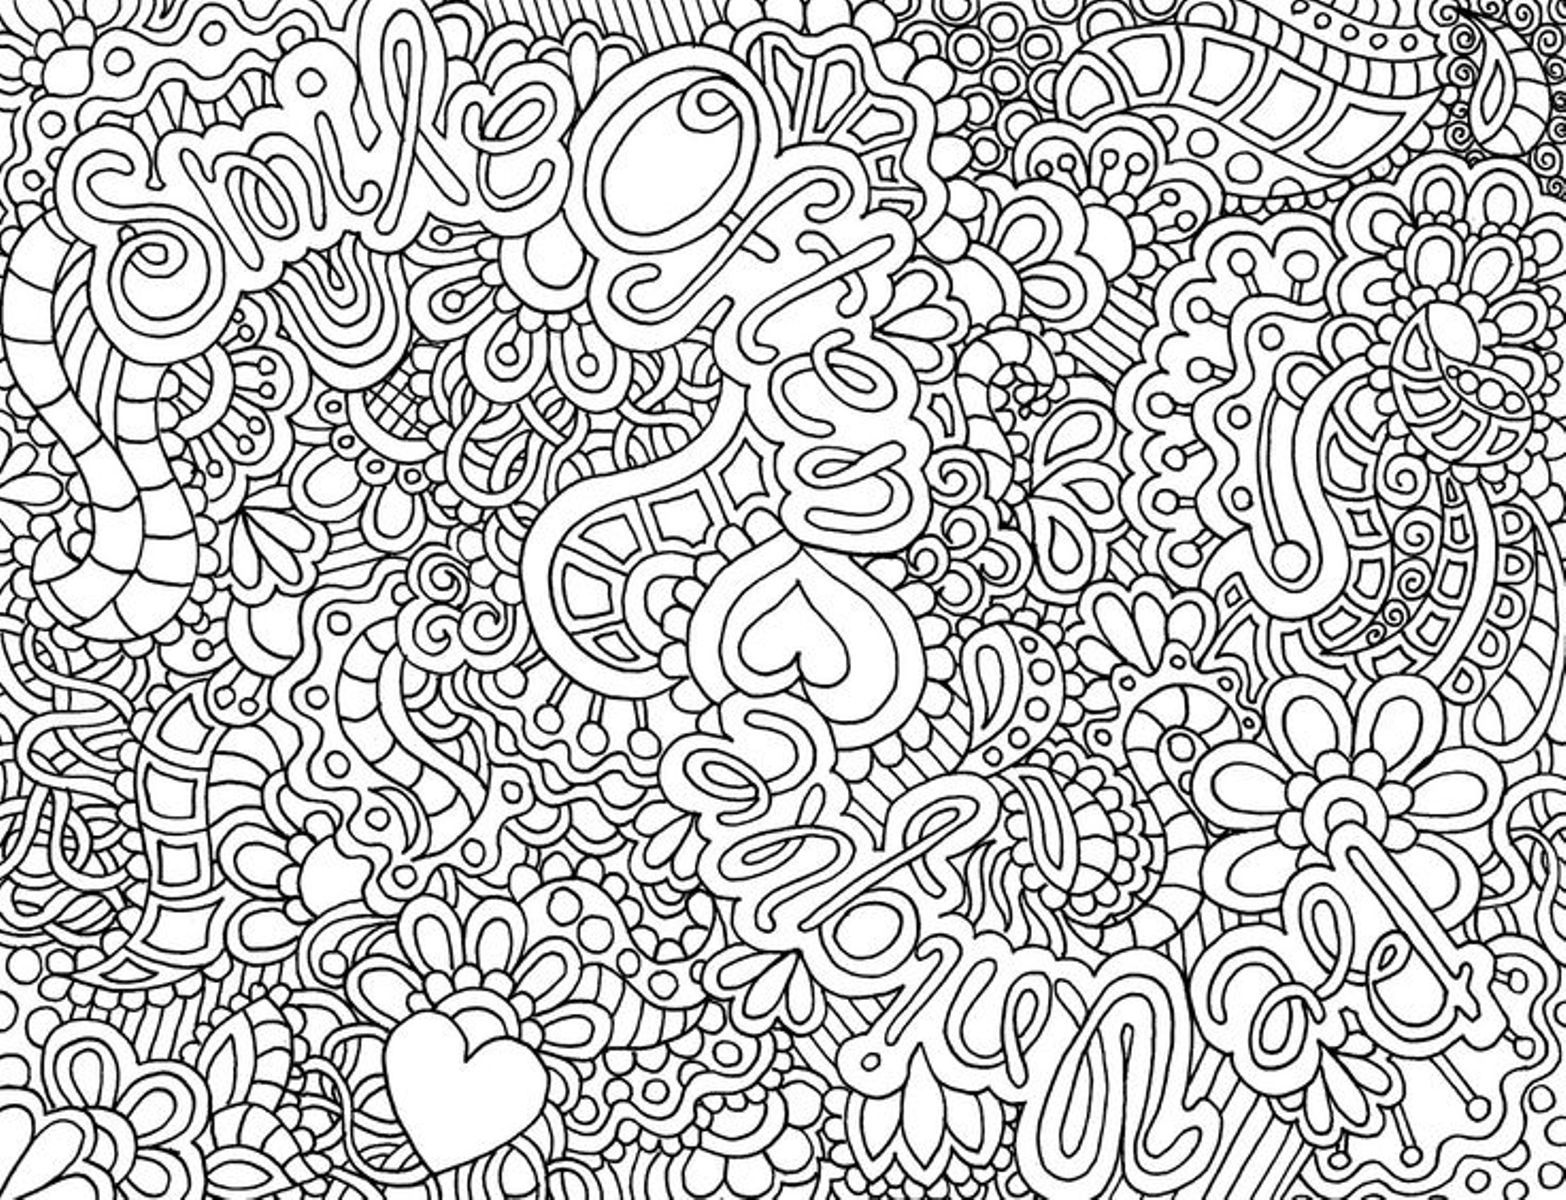 coloring pages for online coloring - photo#34